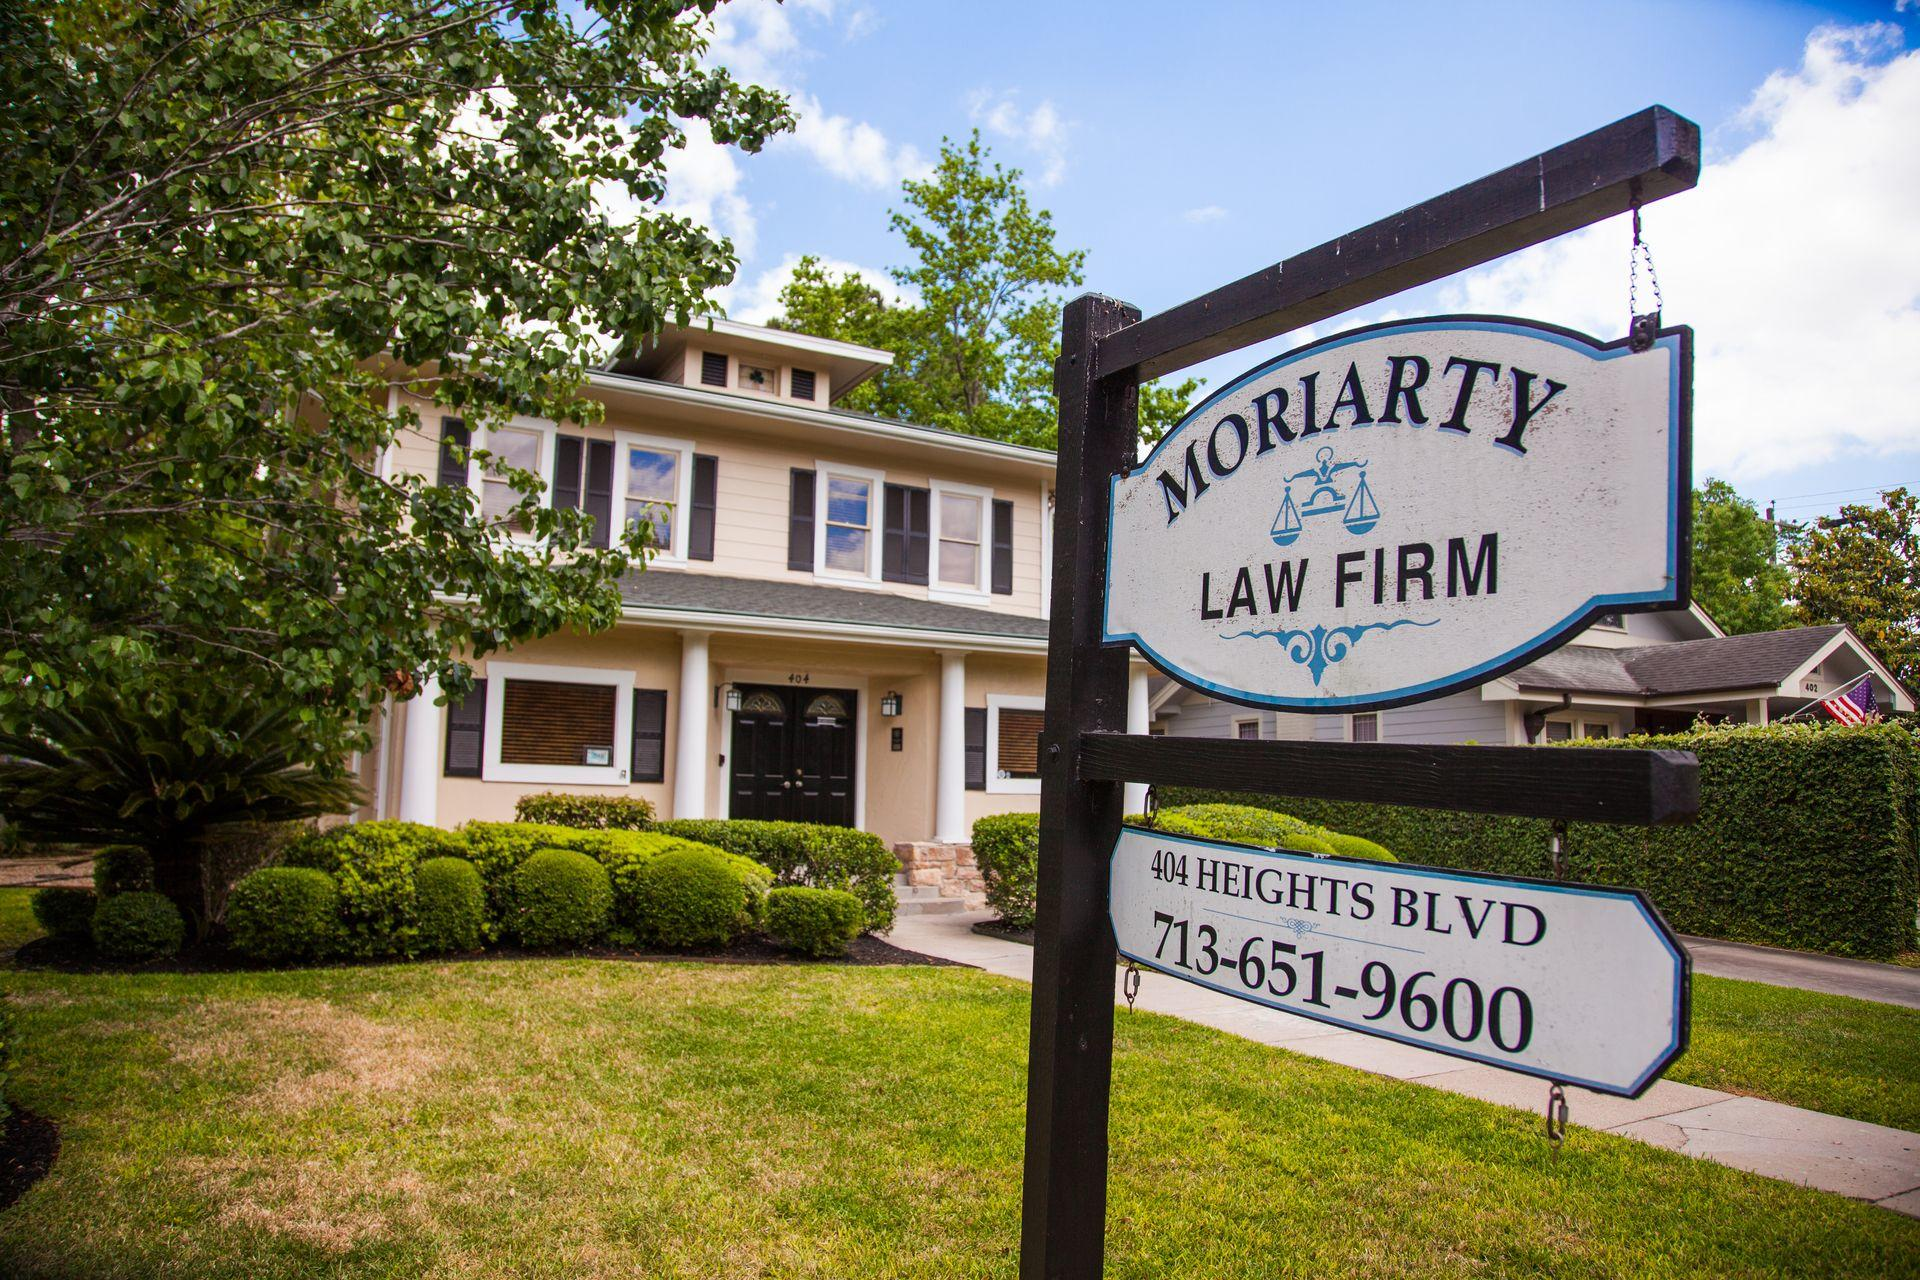 Moriarty Law Firm image 0